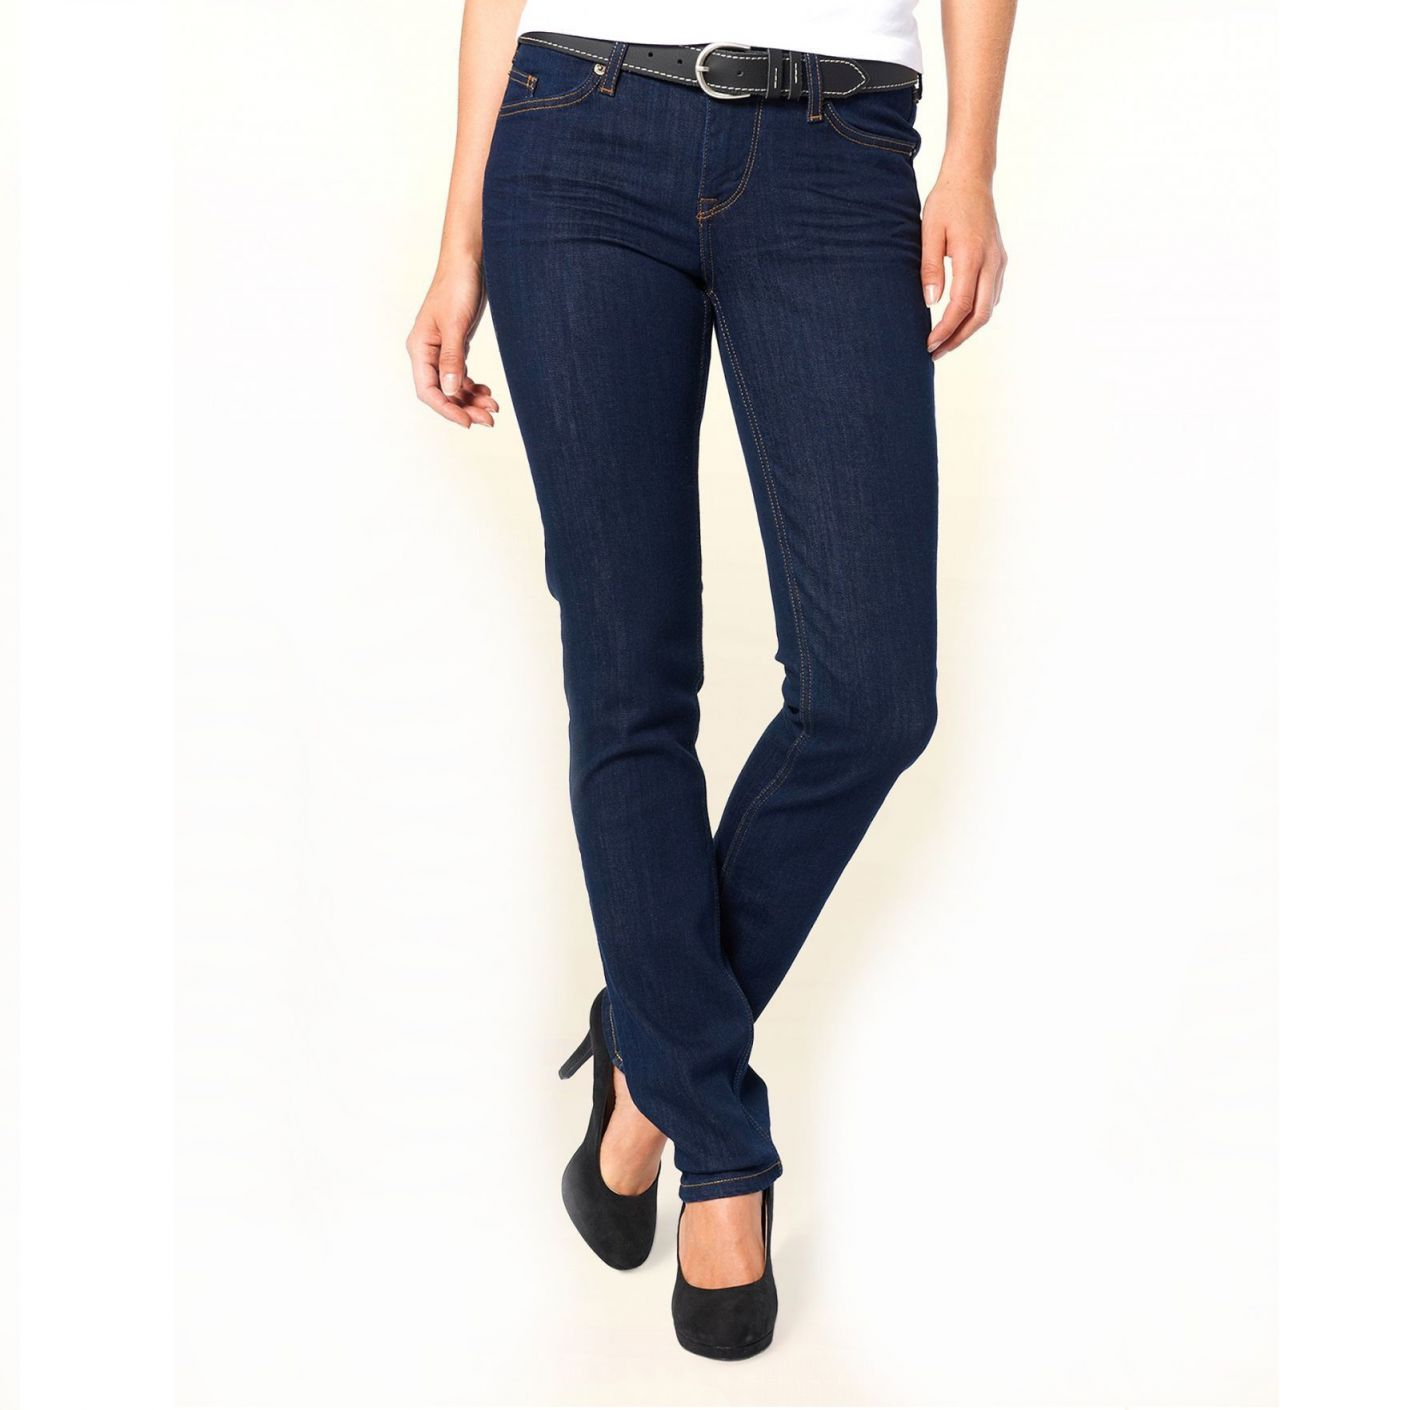 Mustang Jeans Jasmin Rinse Washed 586-5038-590 30-34